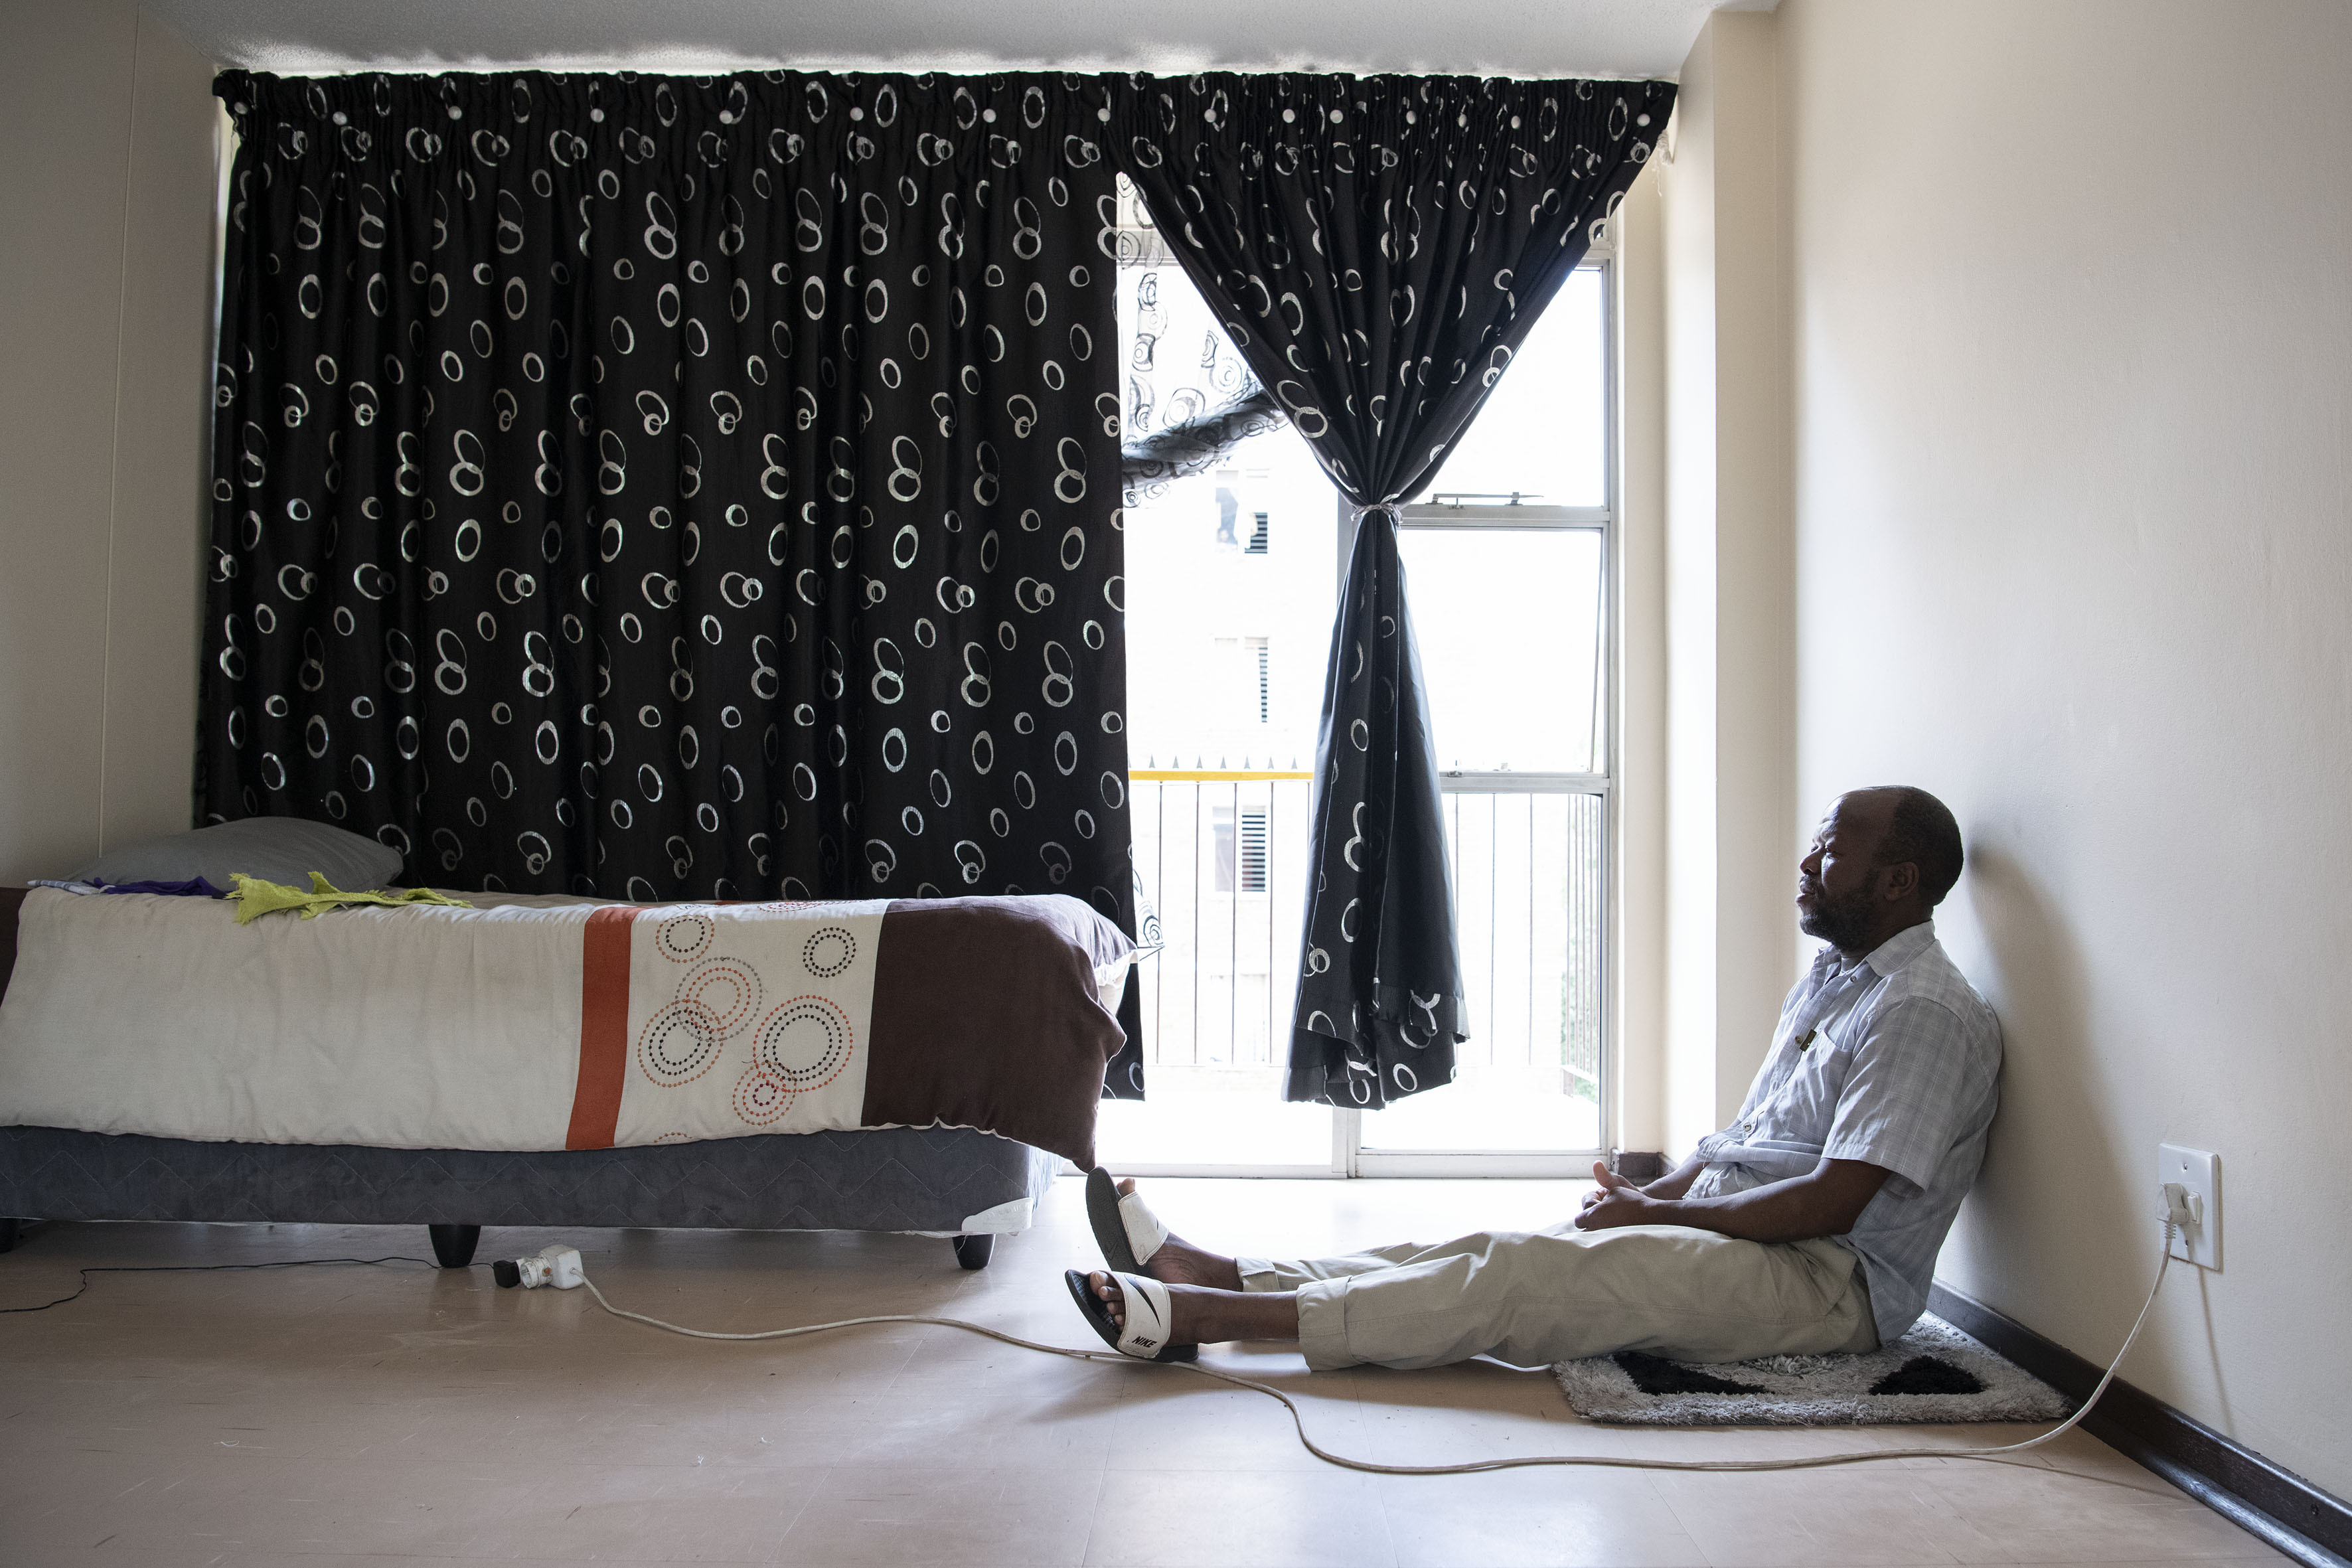 19 January 2019: Zonke Dlamini in a rented flat in Tshwane shortly after his release from prison in eSwatini. Dlamini was a public supporter of Pudemo, even when it was banned in eSwatini.